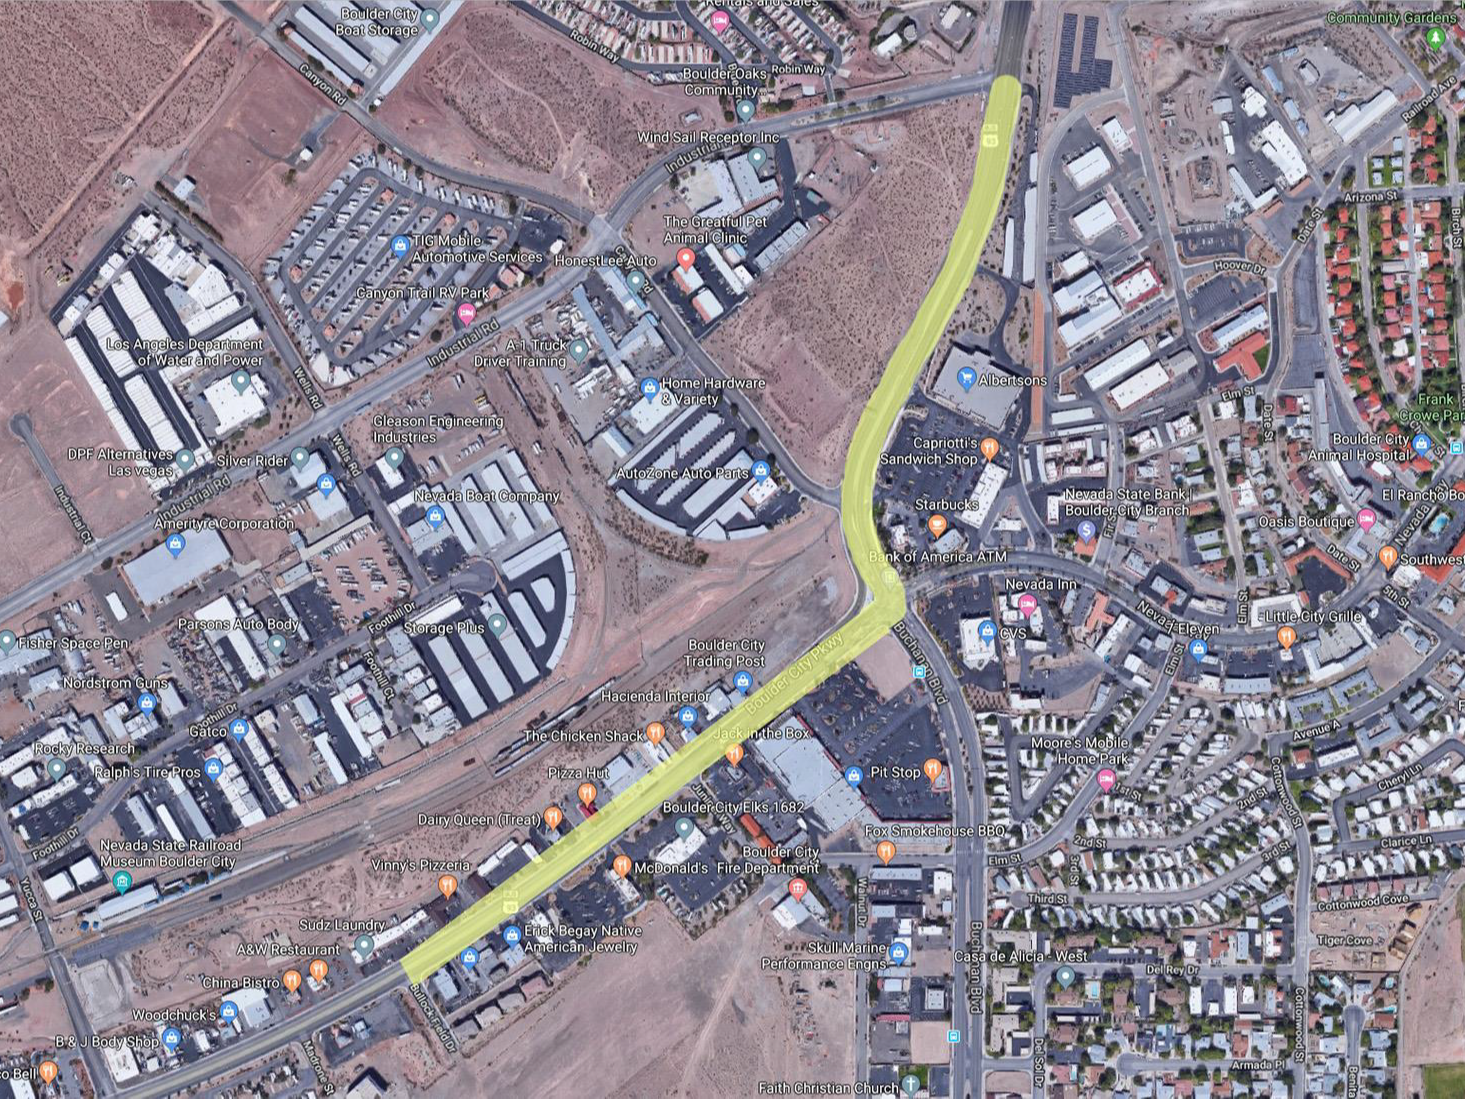 Boulder City Parkway Traffic Shift Paving Work Nov